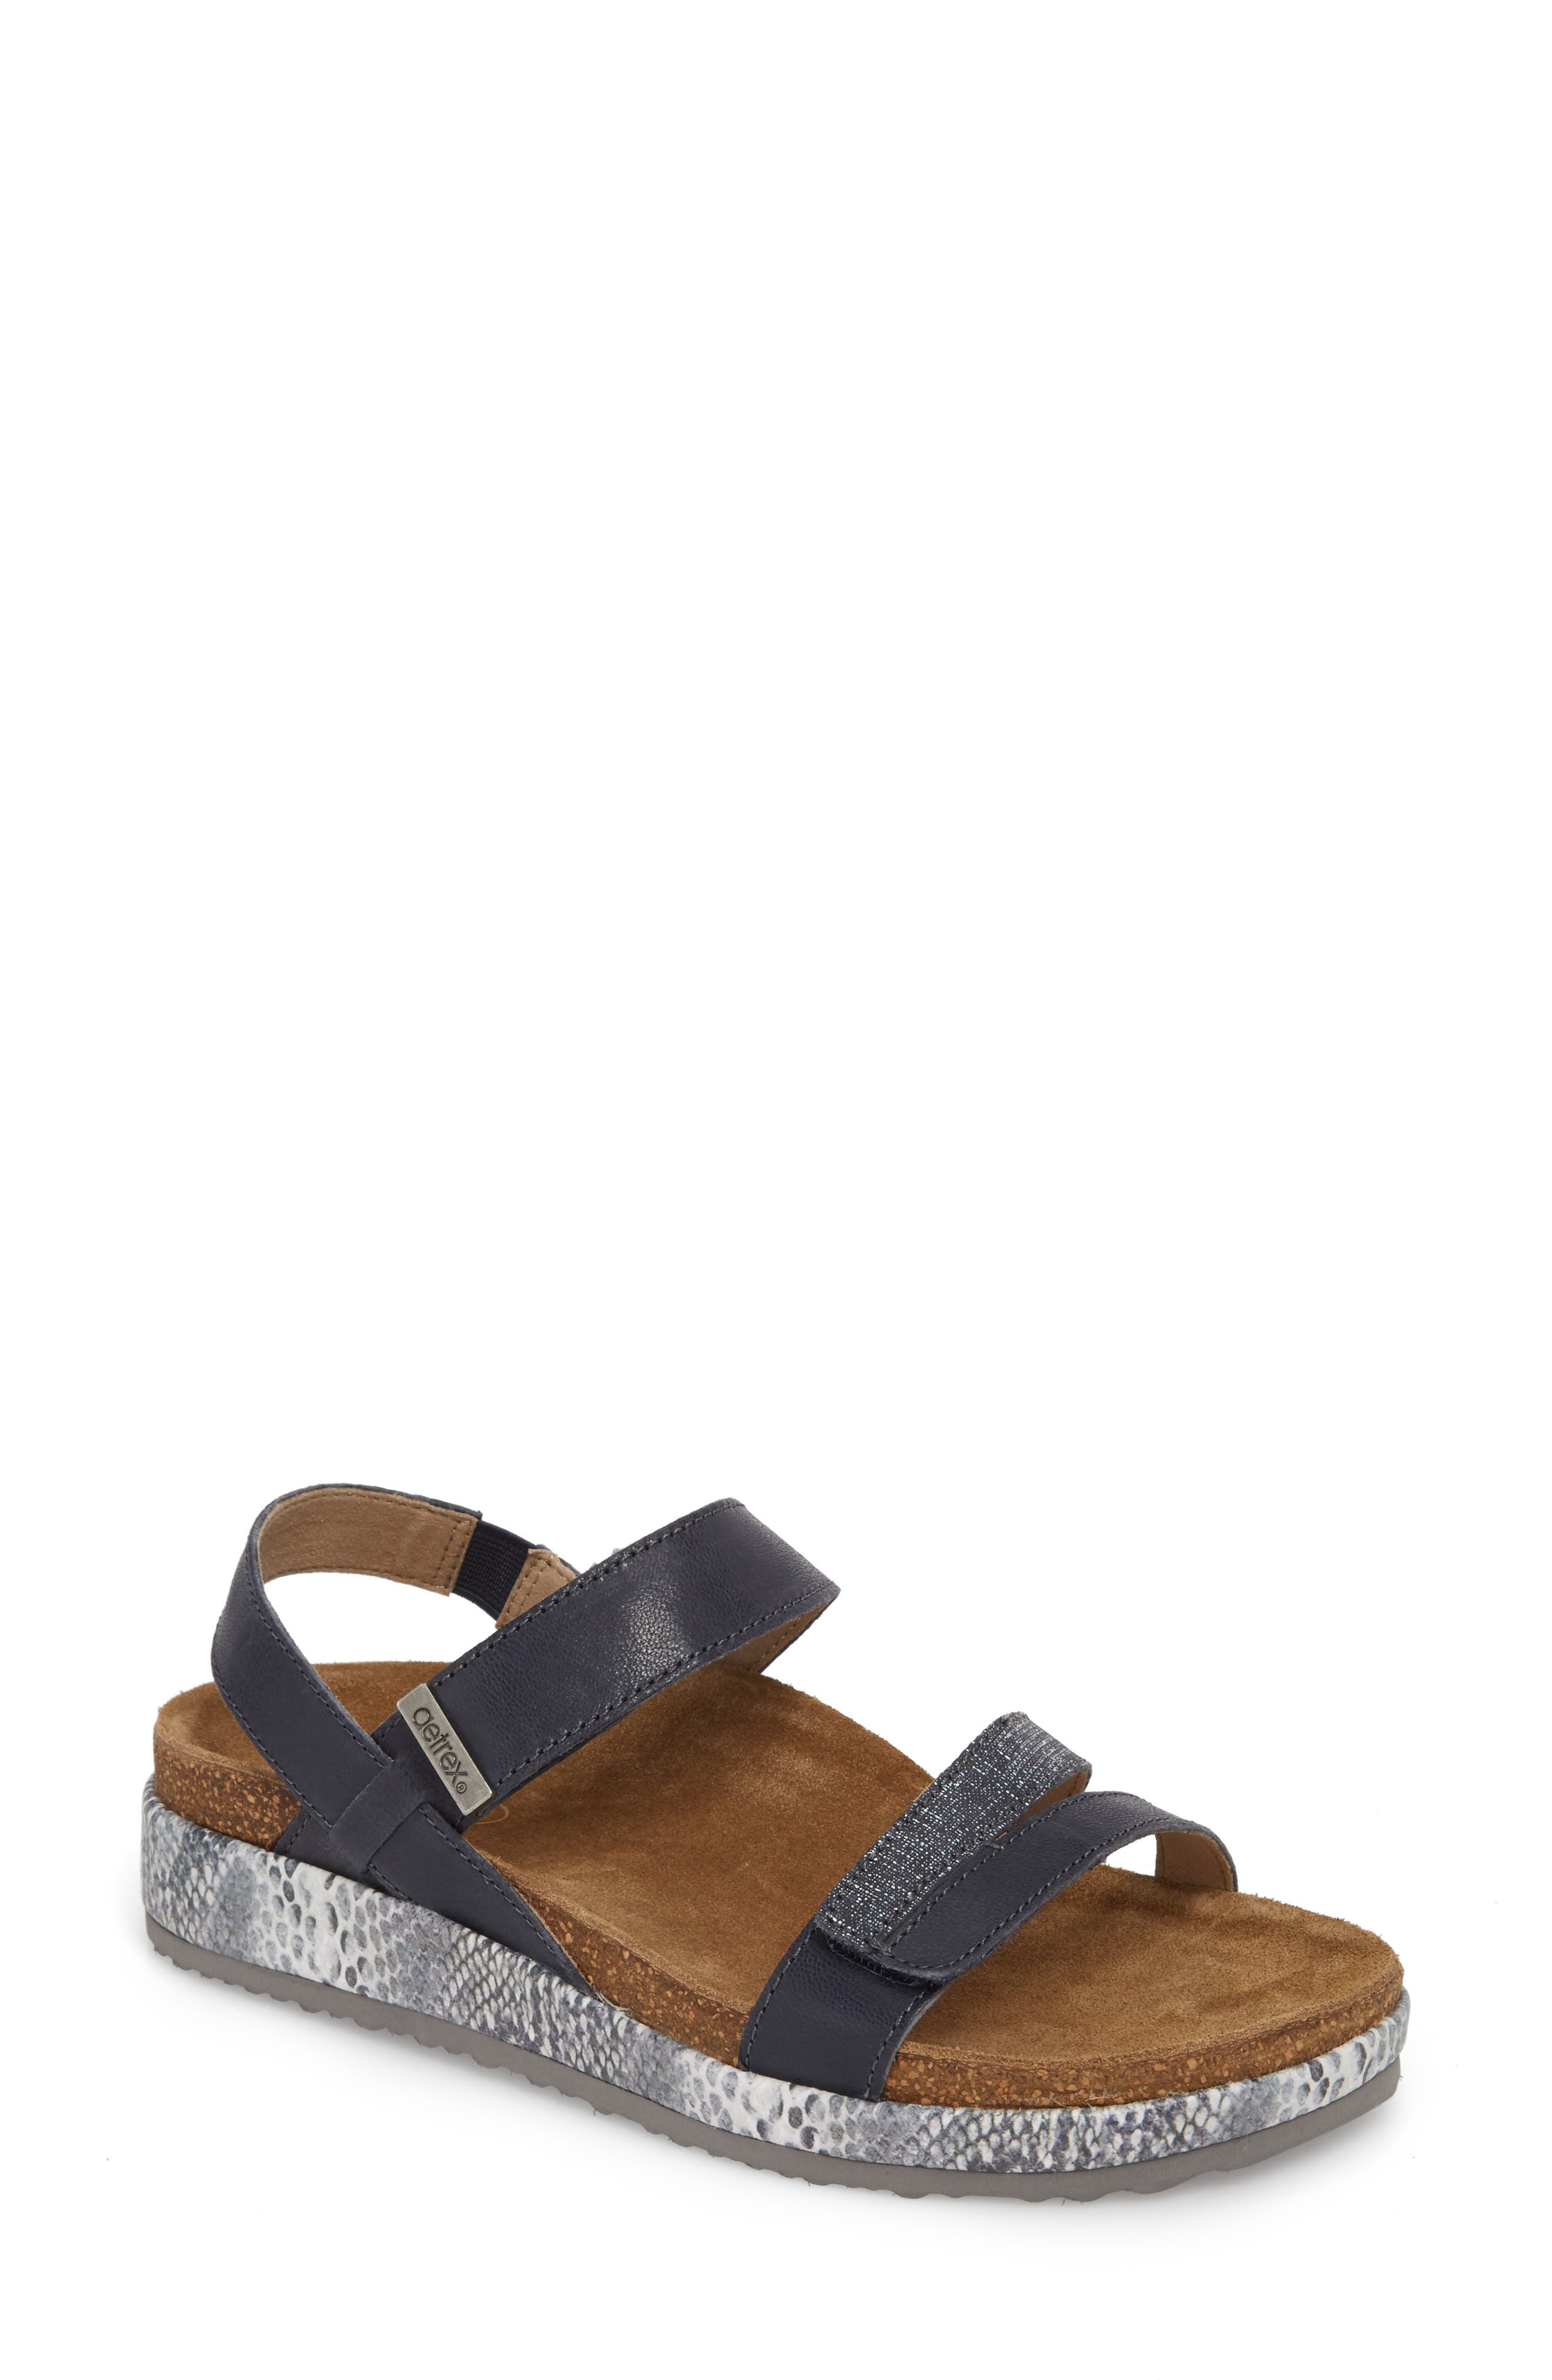 Bethany Sandal,                         Main,                         color, Navy Multi Leather